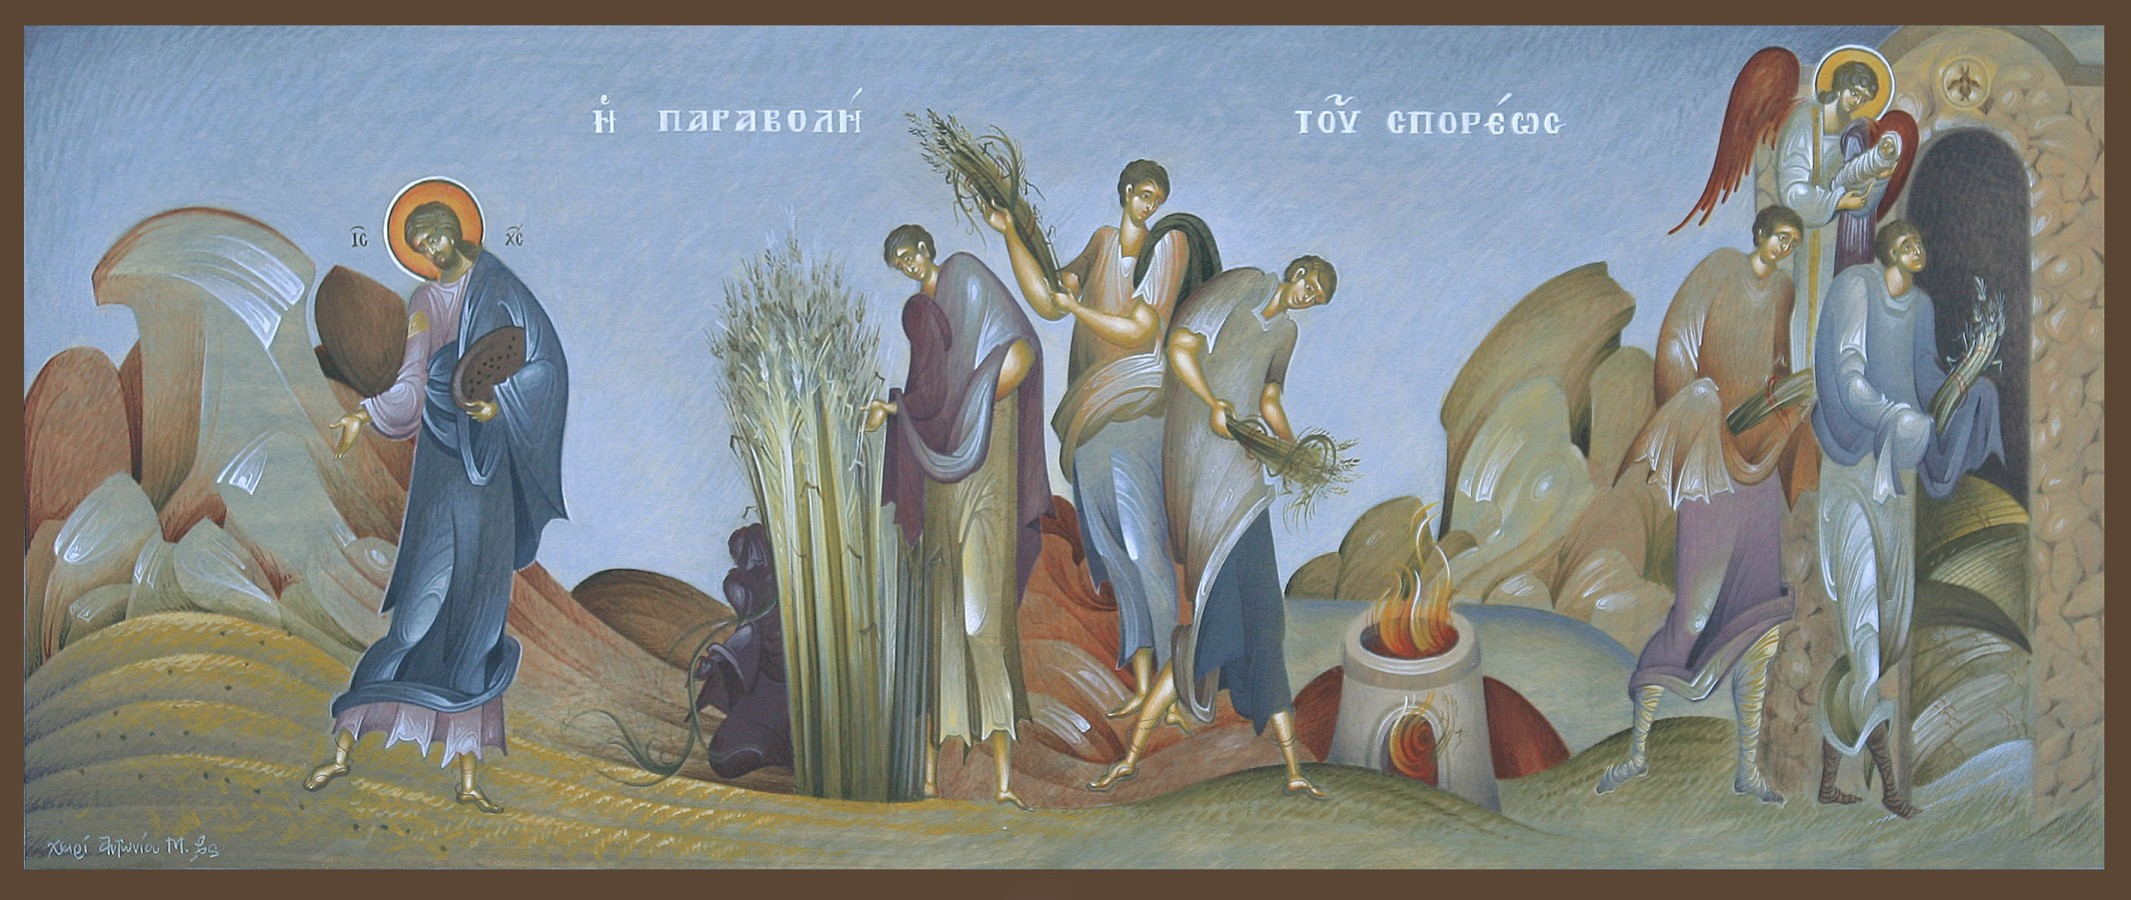 Parable of the Sower, by Fikos, 2006. Egg tempera on prepared wood, 70×30 cm.